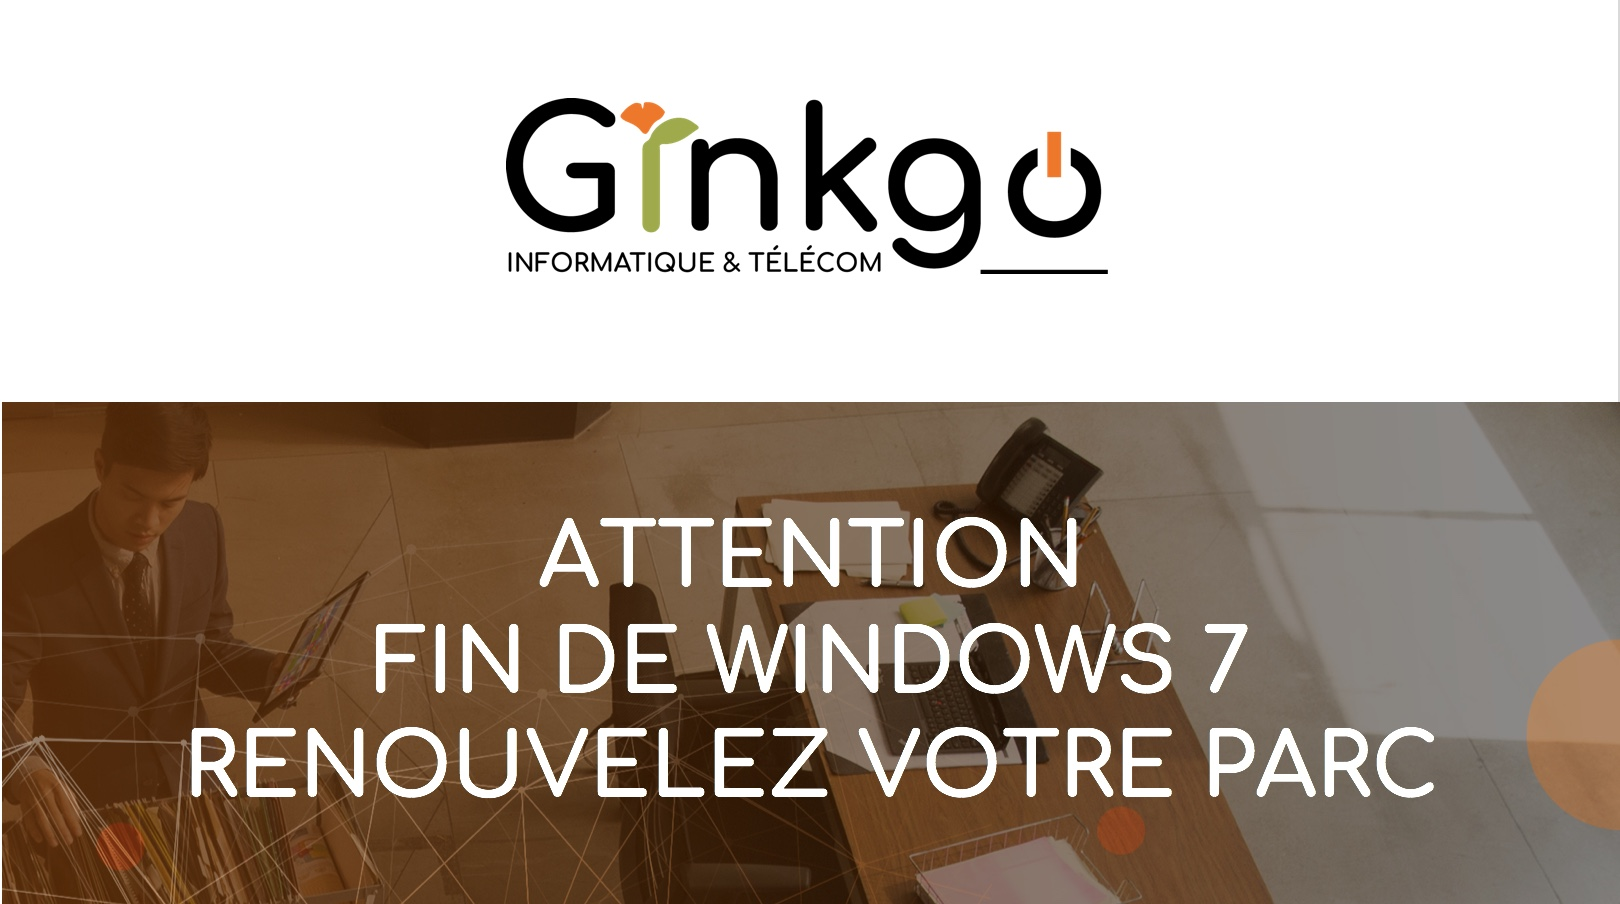 ATTENTION – FIN DE WINDOWS 7 – RENOUVELEZ VOTRE PARC